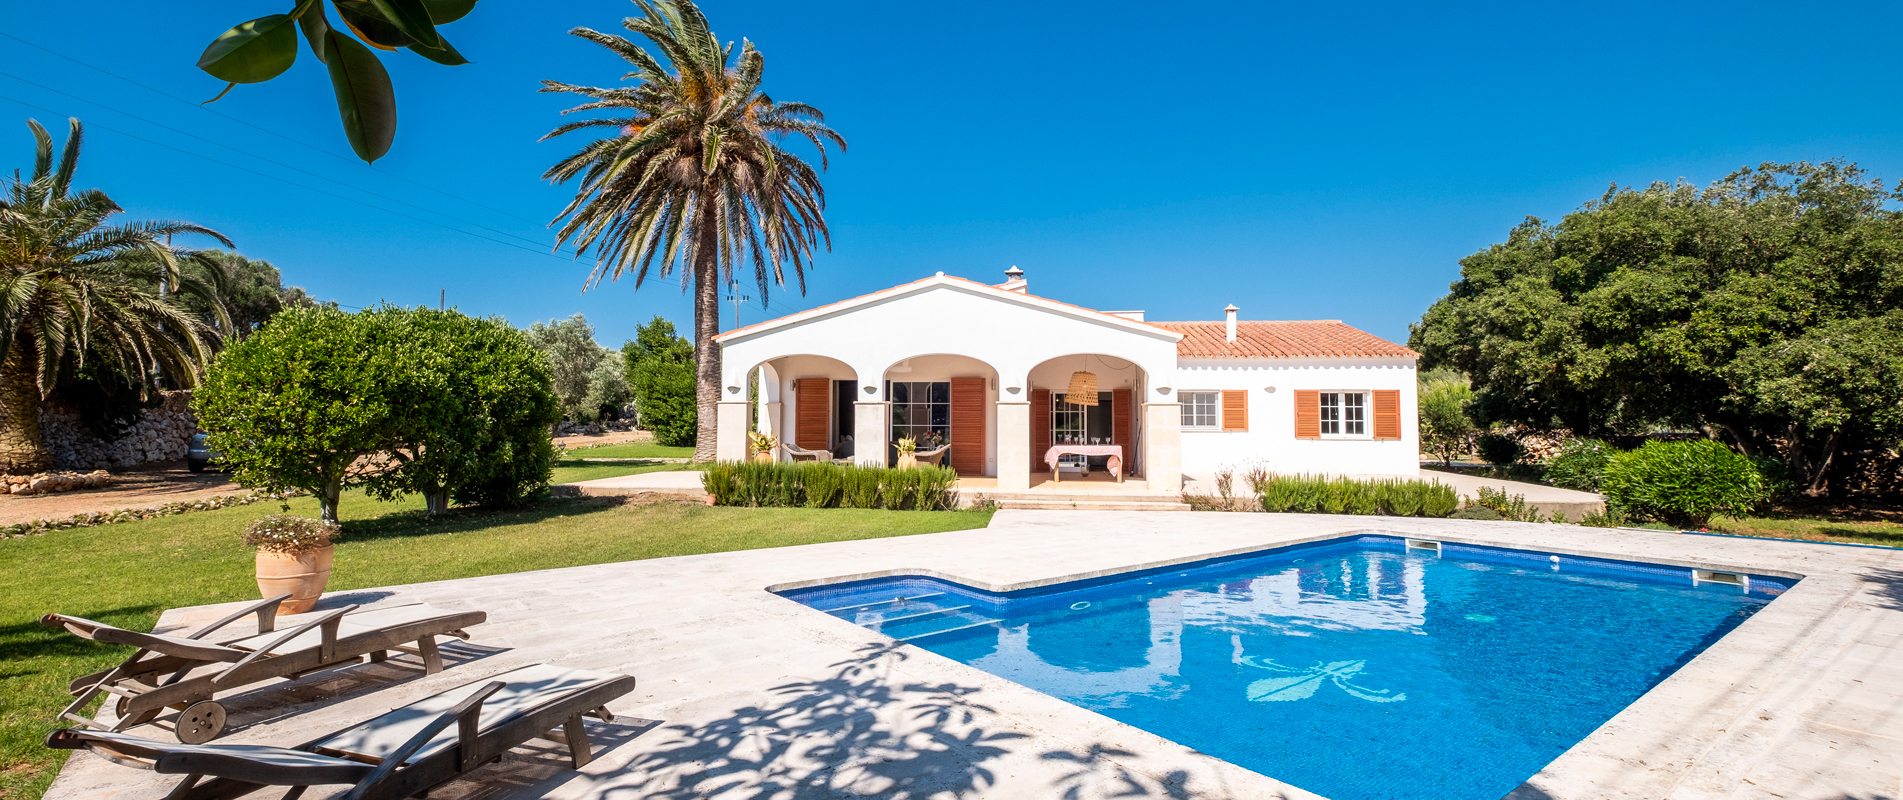 Villas best for kids in Menorca